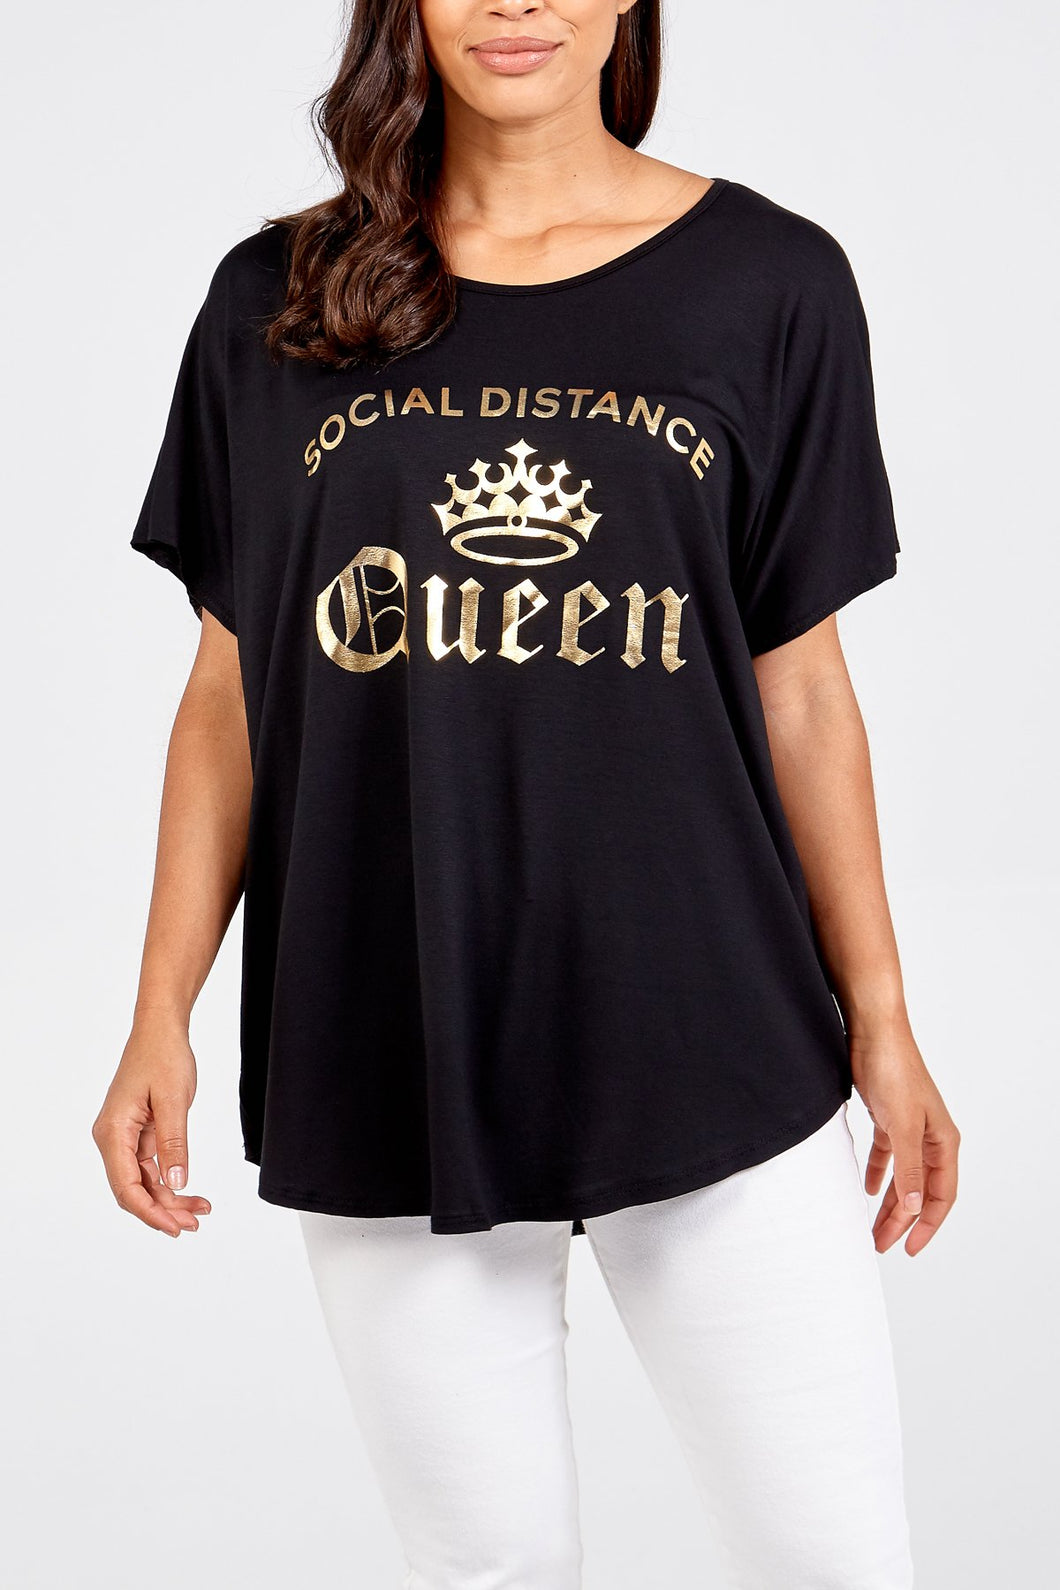 Social Distance Queen Gold Foil Top Black